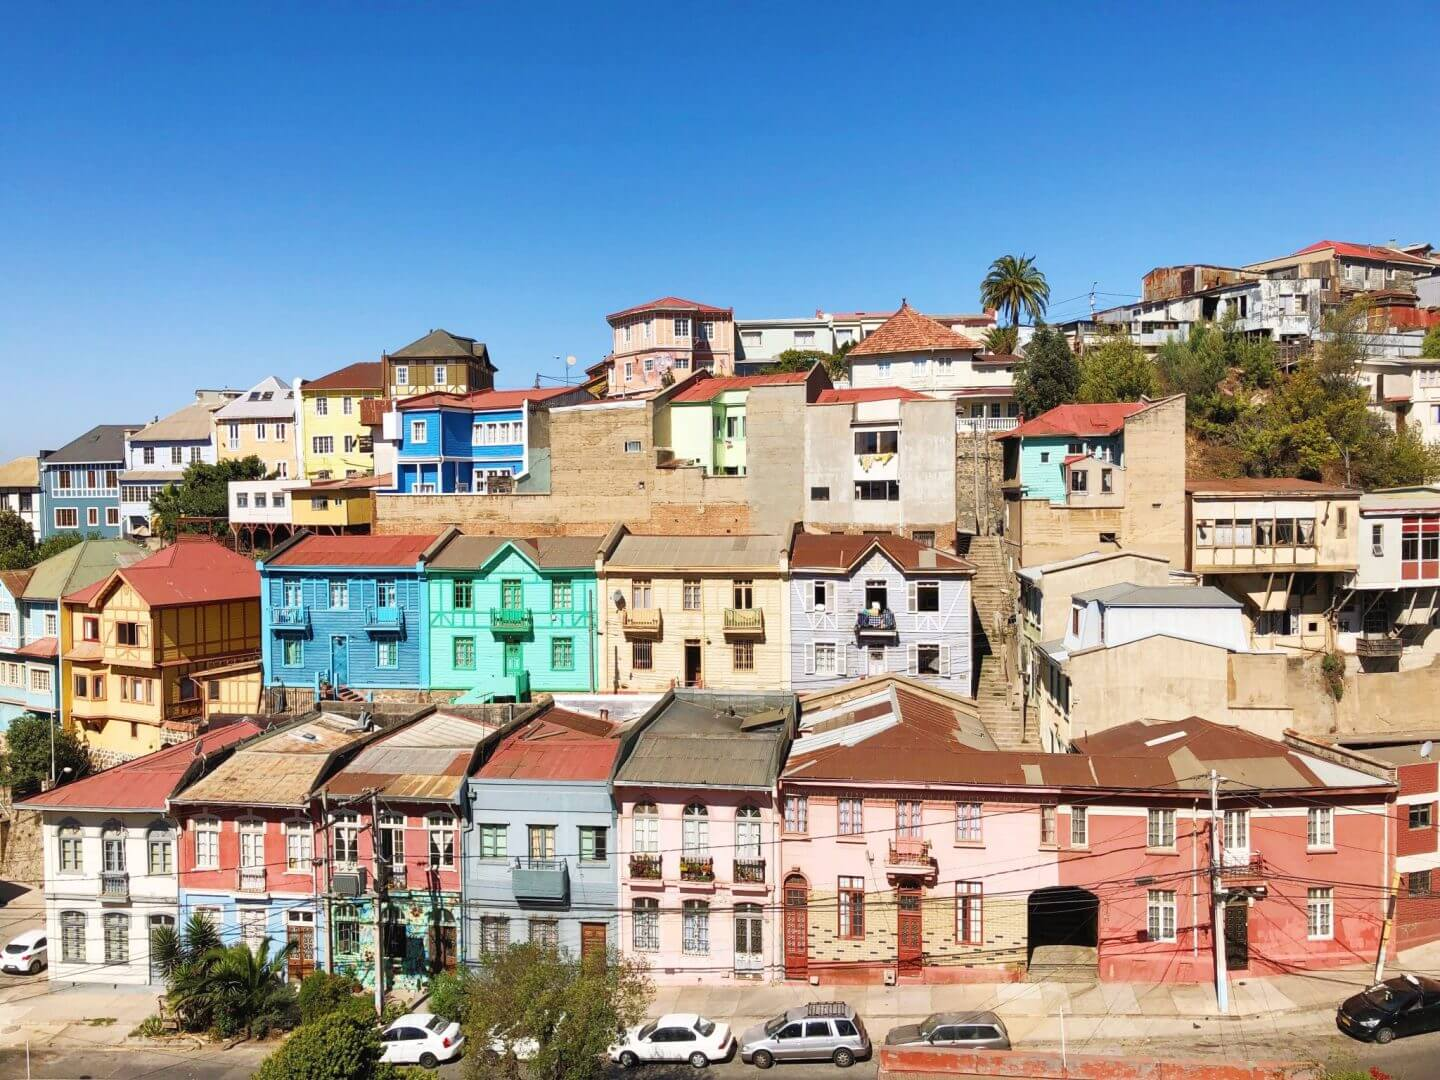 image of Valparaiso in Chile part of the 2019 roundup